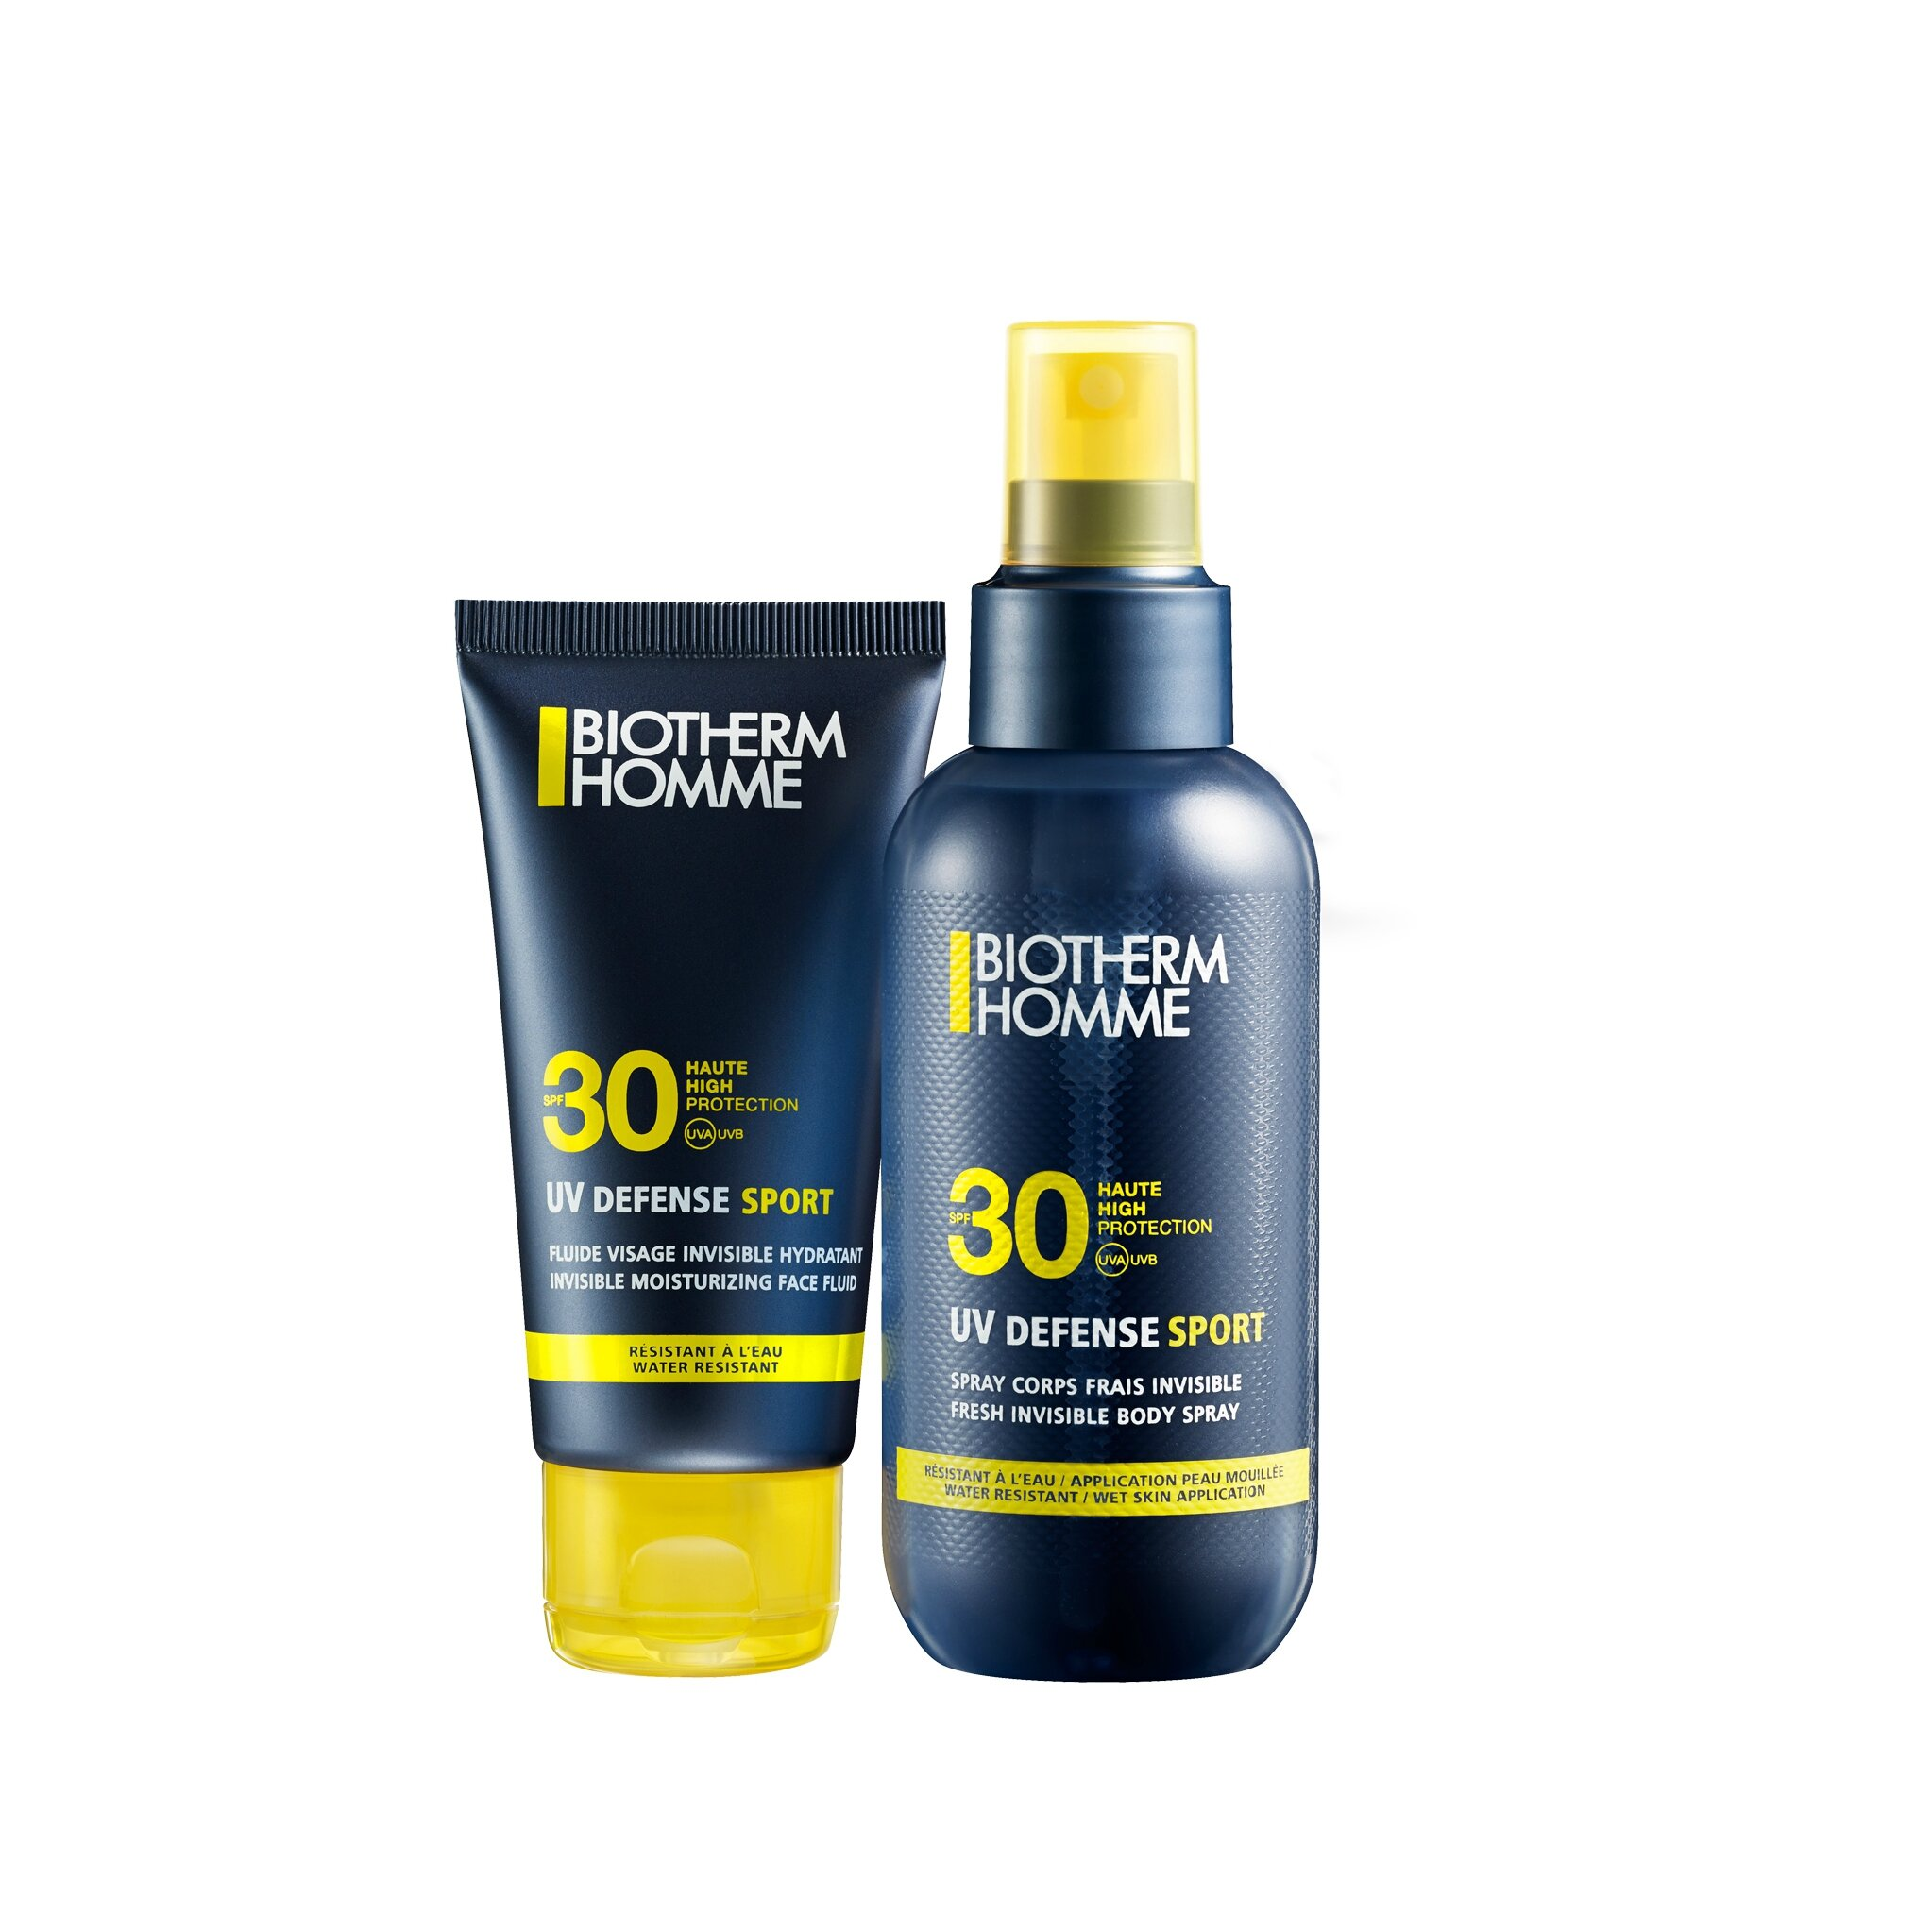 UV Defense Sport de Biotherm